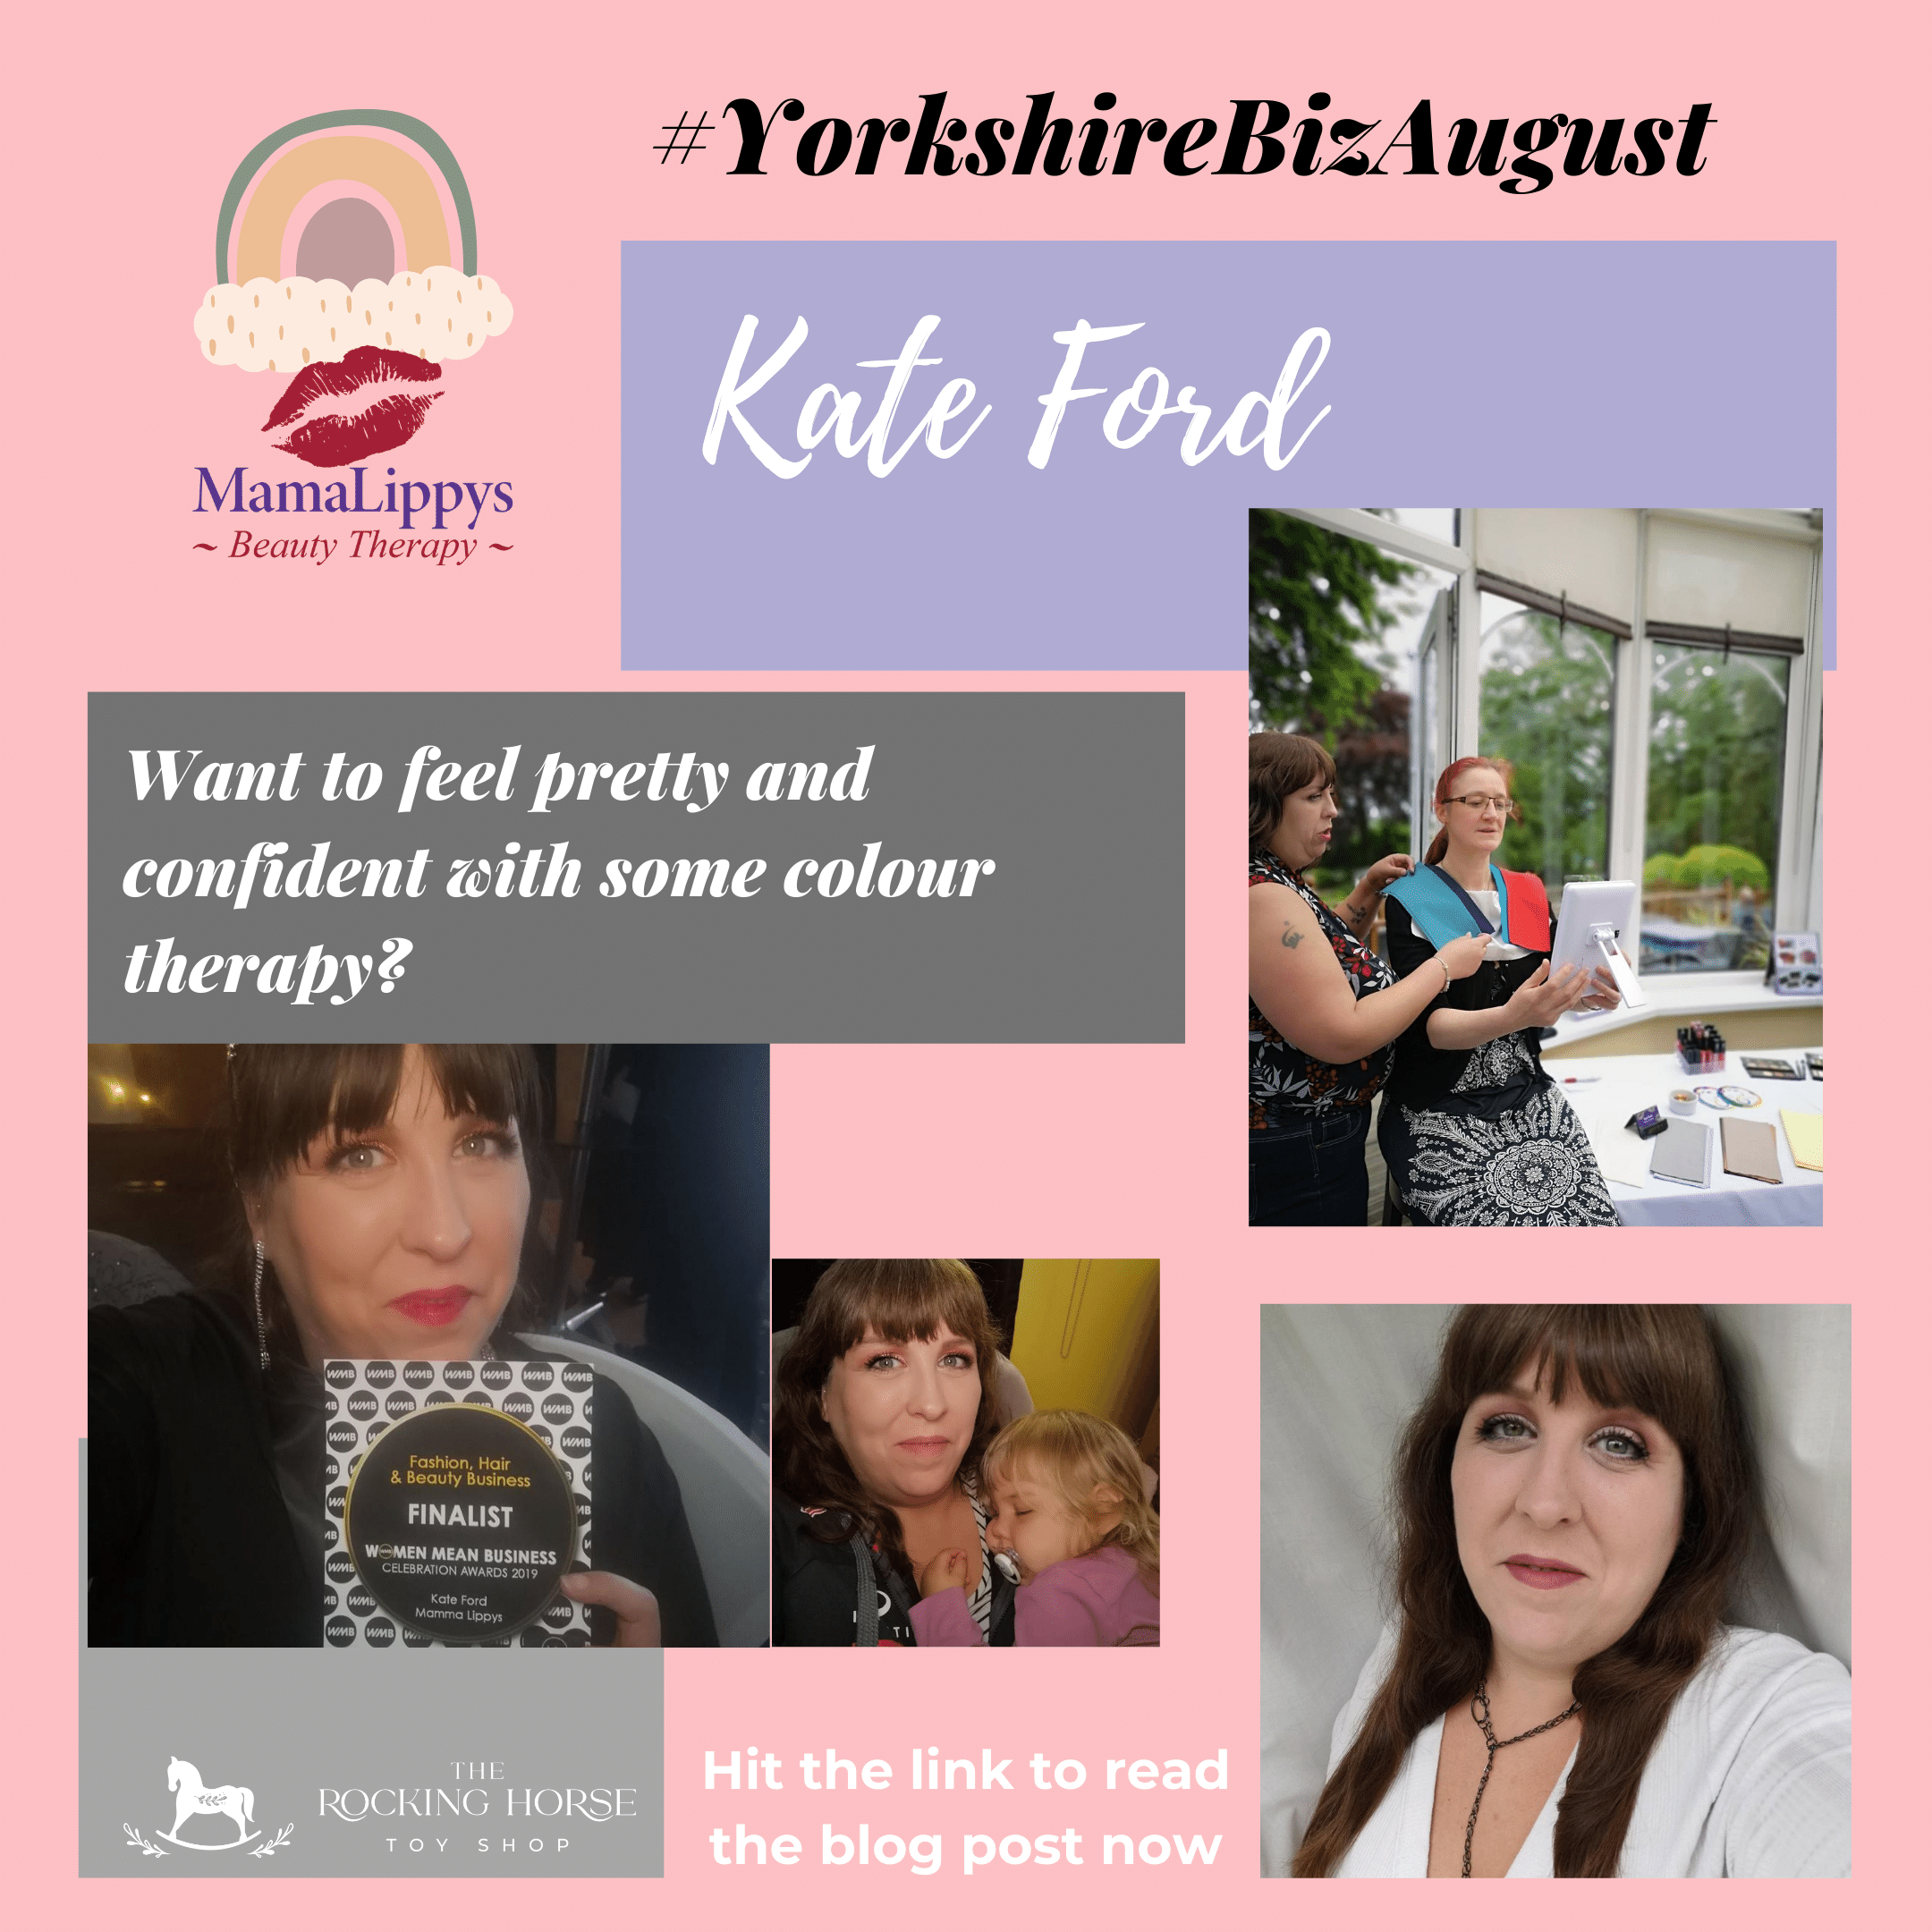 Yorkshire Biz August 18 - Kate Ford - MamaLippys Beauty Therapy